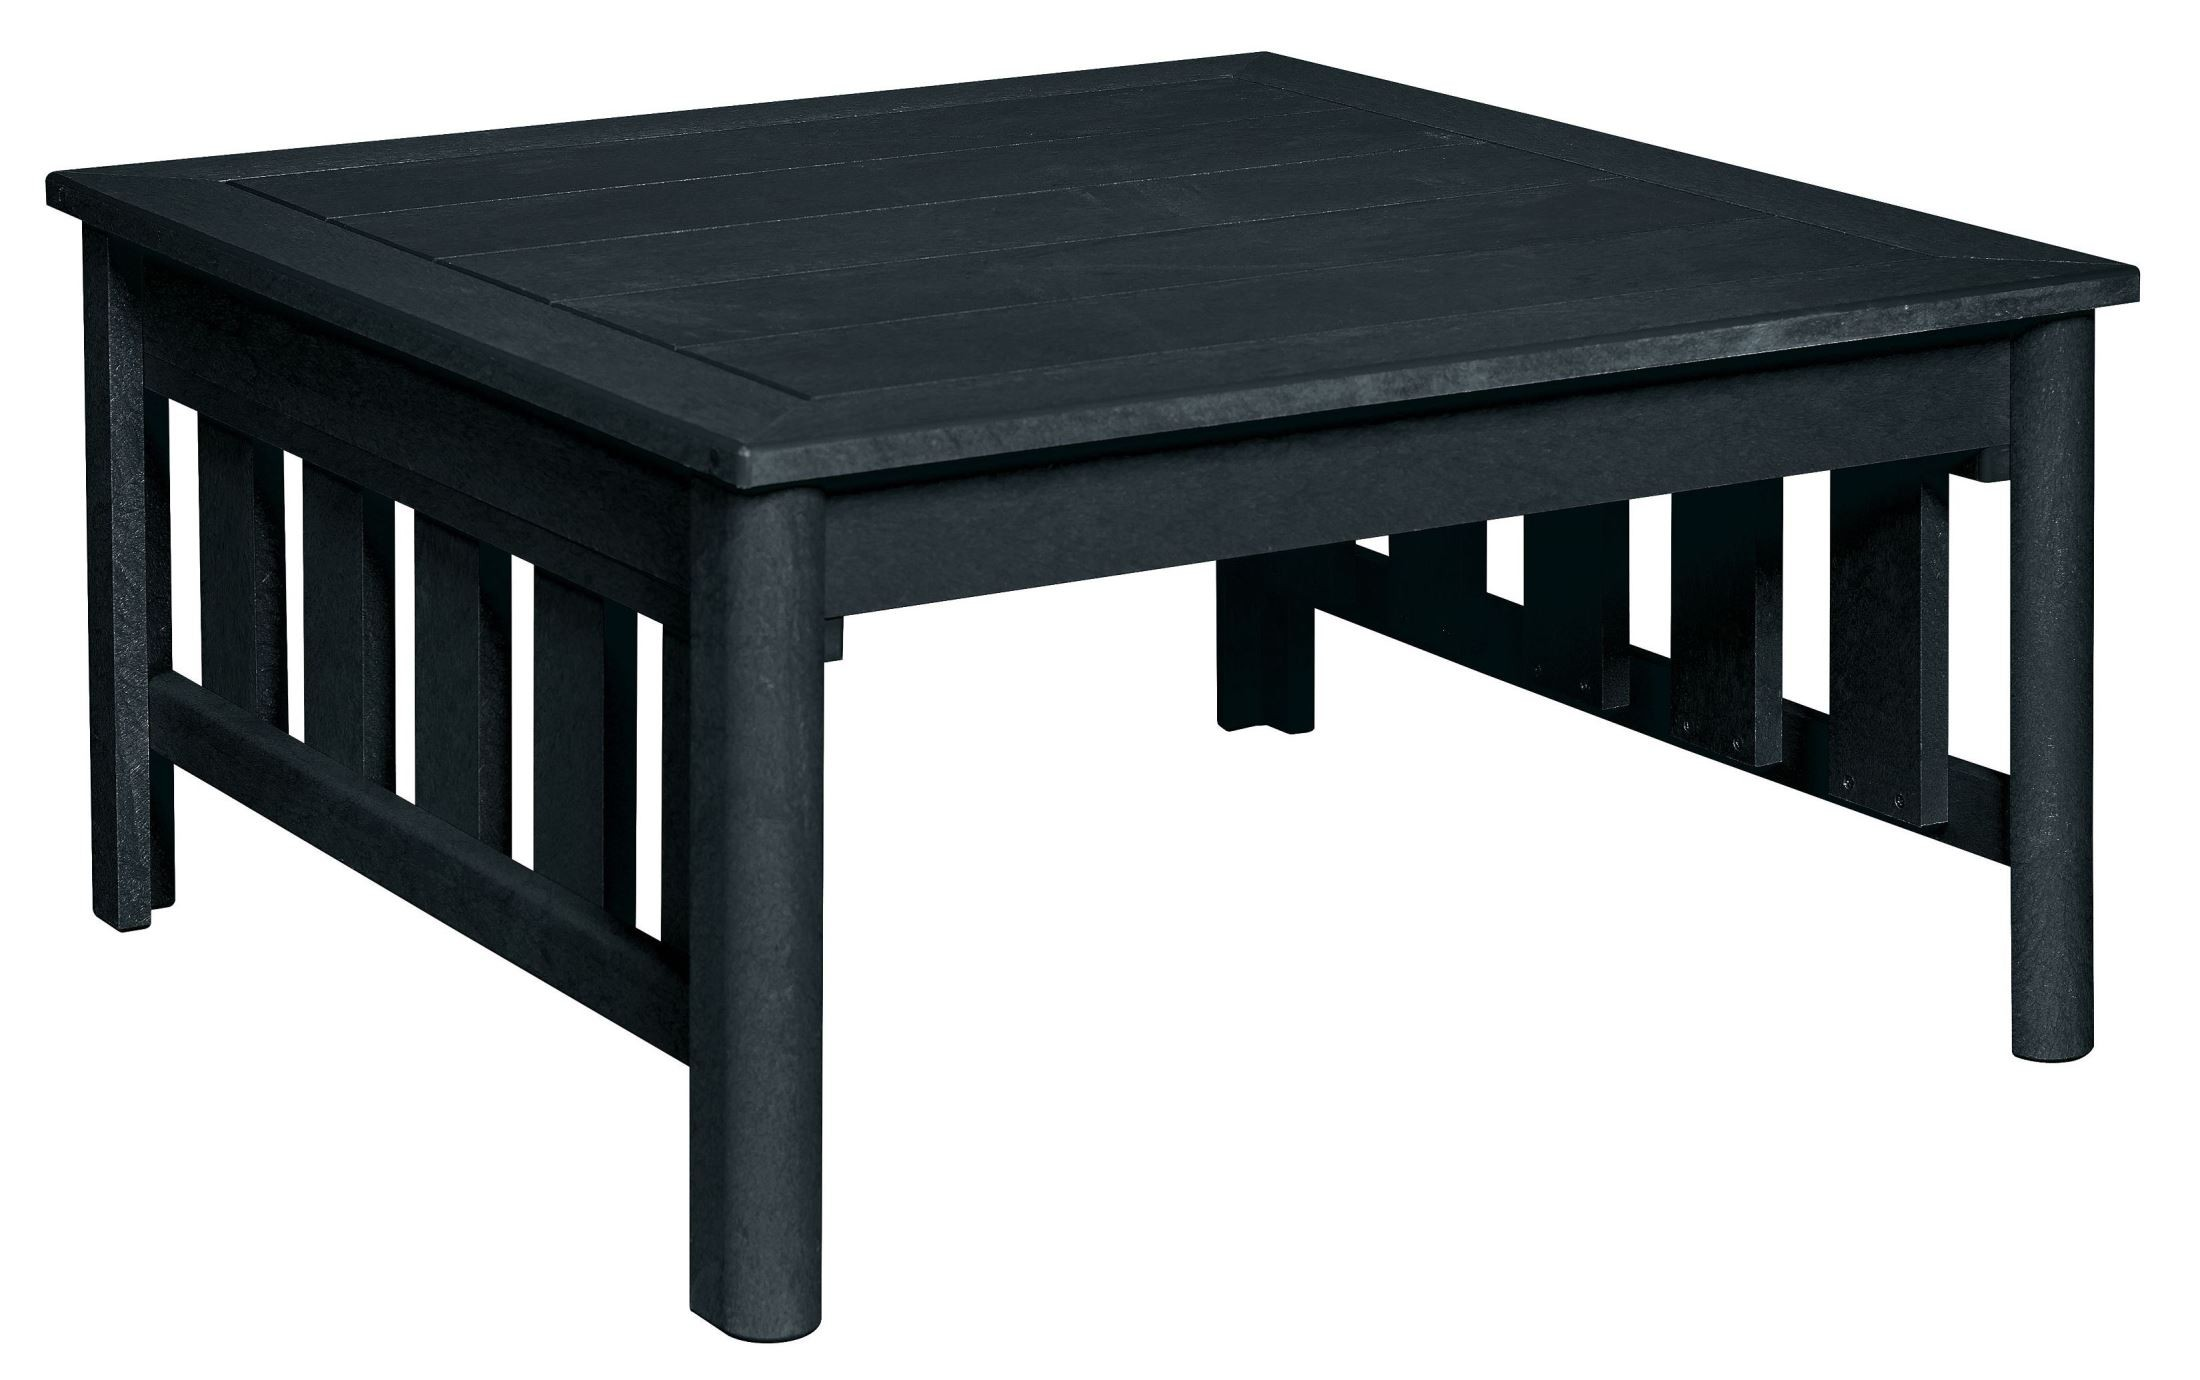 Stratford black square cocktail table from cr plastic for Square cocktail table